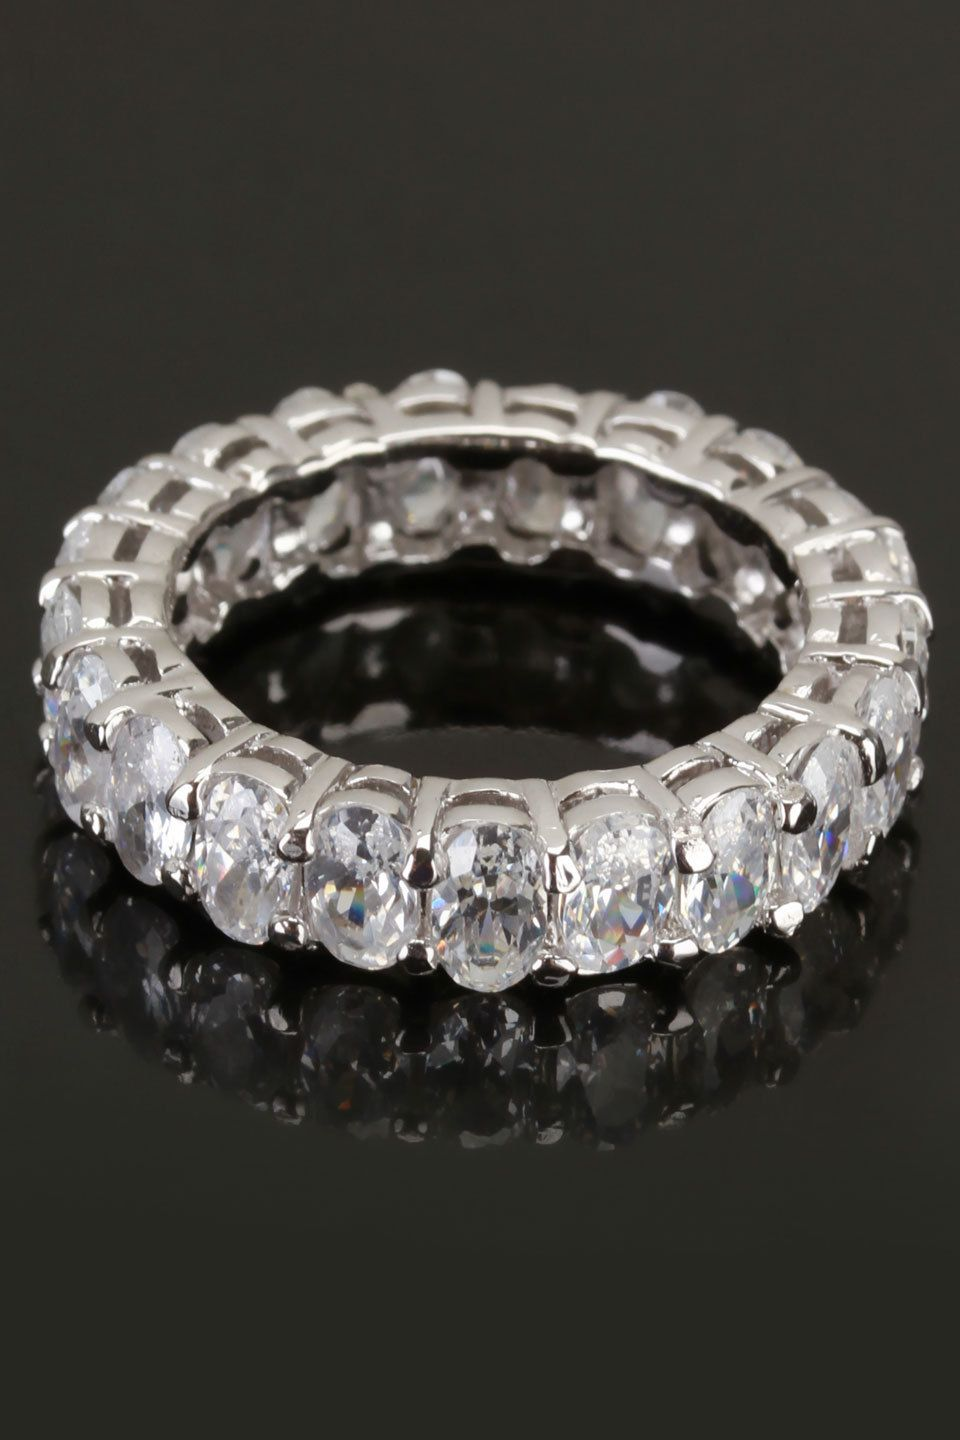 Silver & Co Sterling Silver & Zirconia Opulence Ring - Beyond the Rack awesome ring  only $40!!